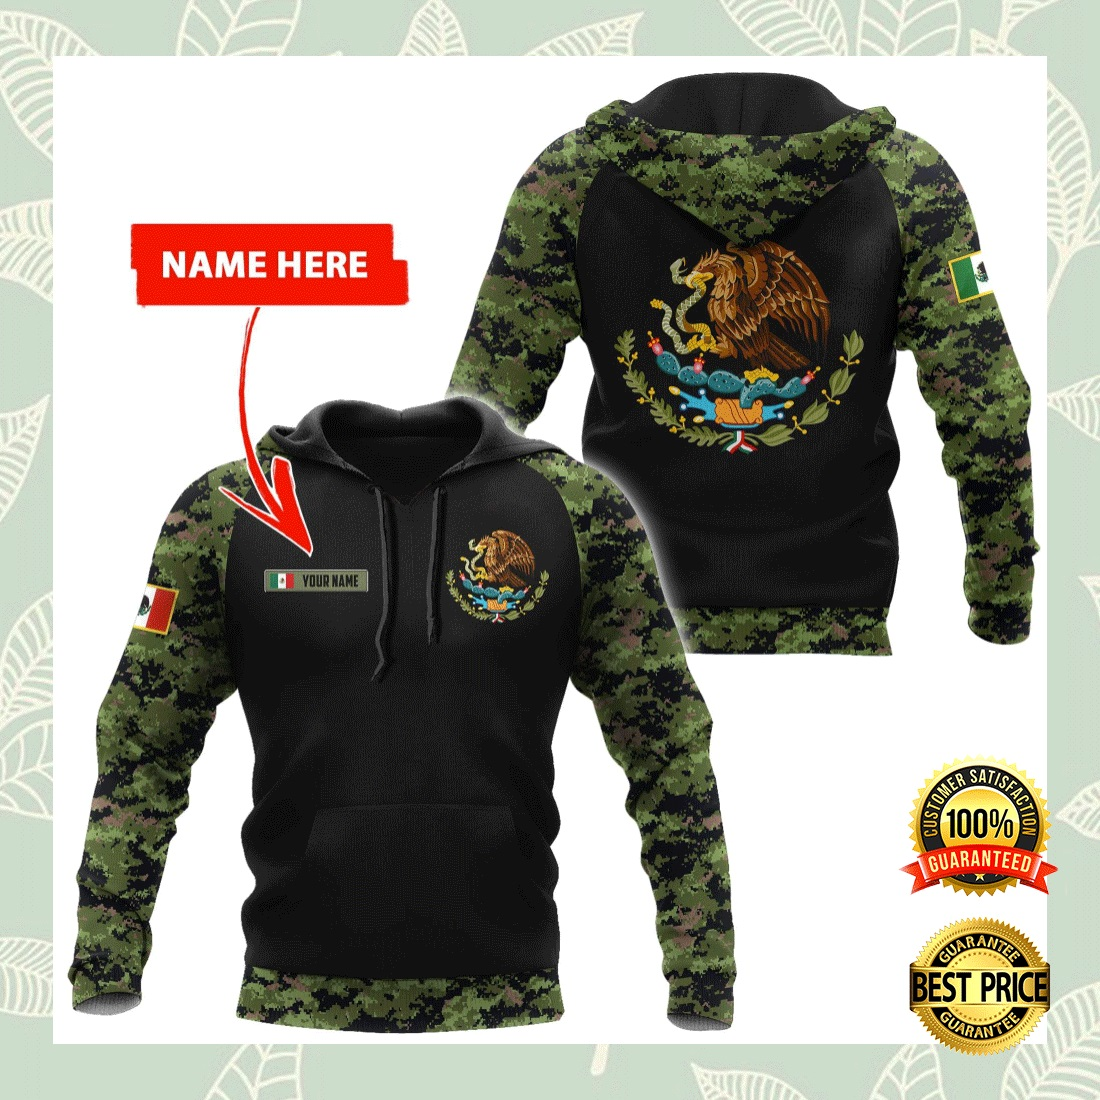 PERSONALIZED MEXICAN COAT CAMO ALL OVER PRINTED 3D HOODIE 6